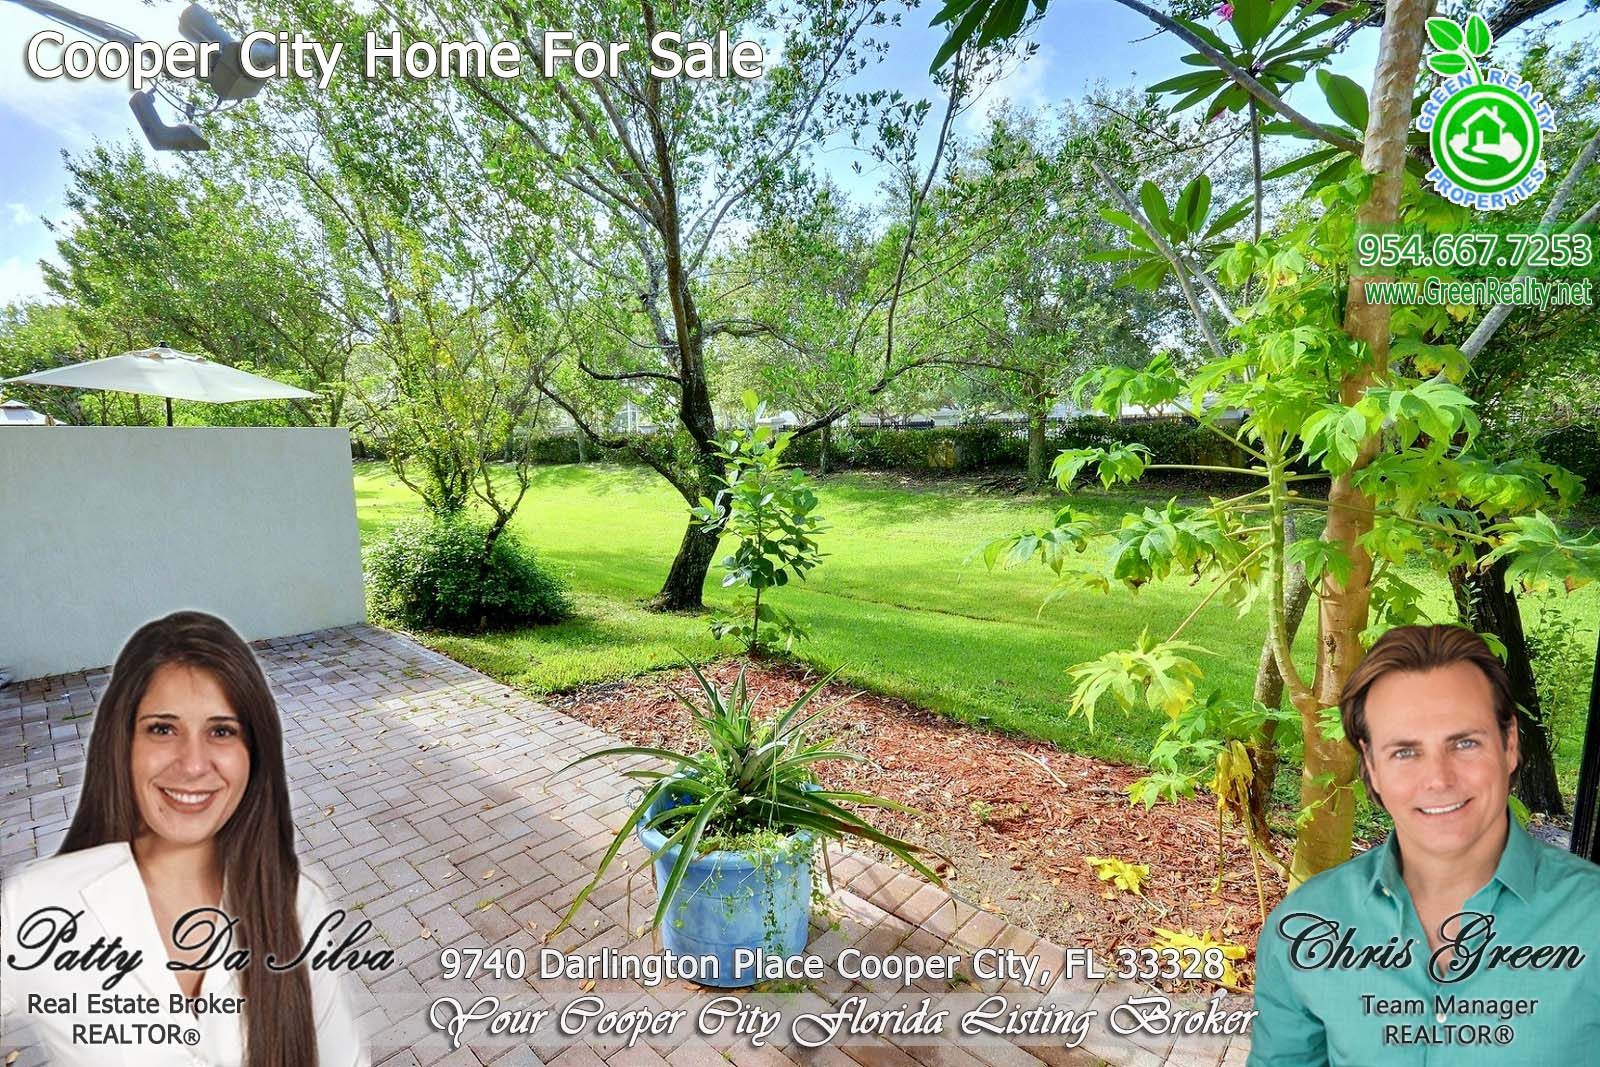 26 Darlington Park Cooper City Homes For Sale (3)